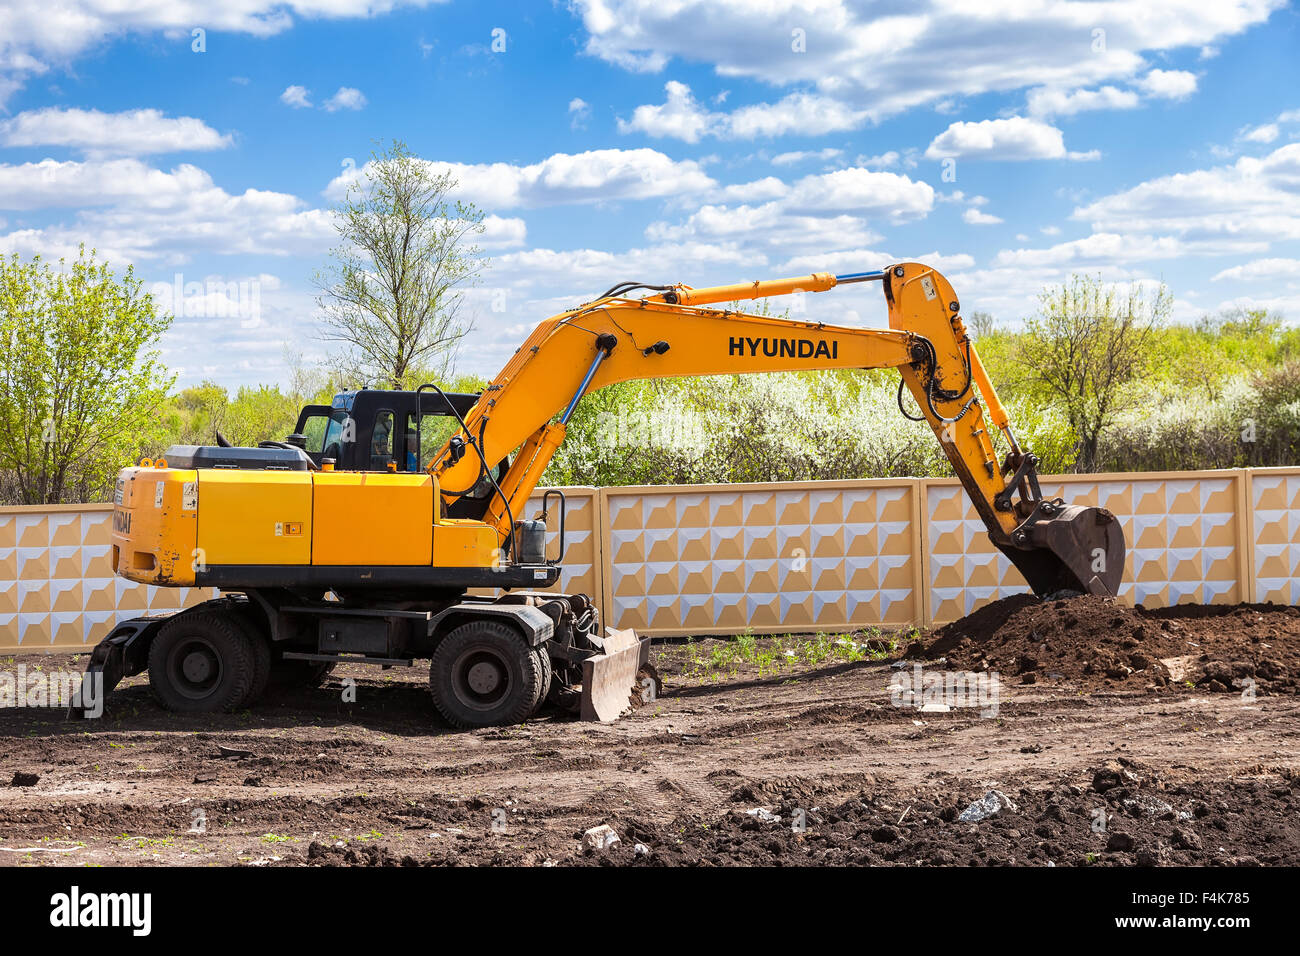 Hyundai Excavator High Resolution Stock Photography And Images Alamy